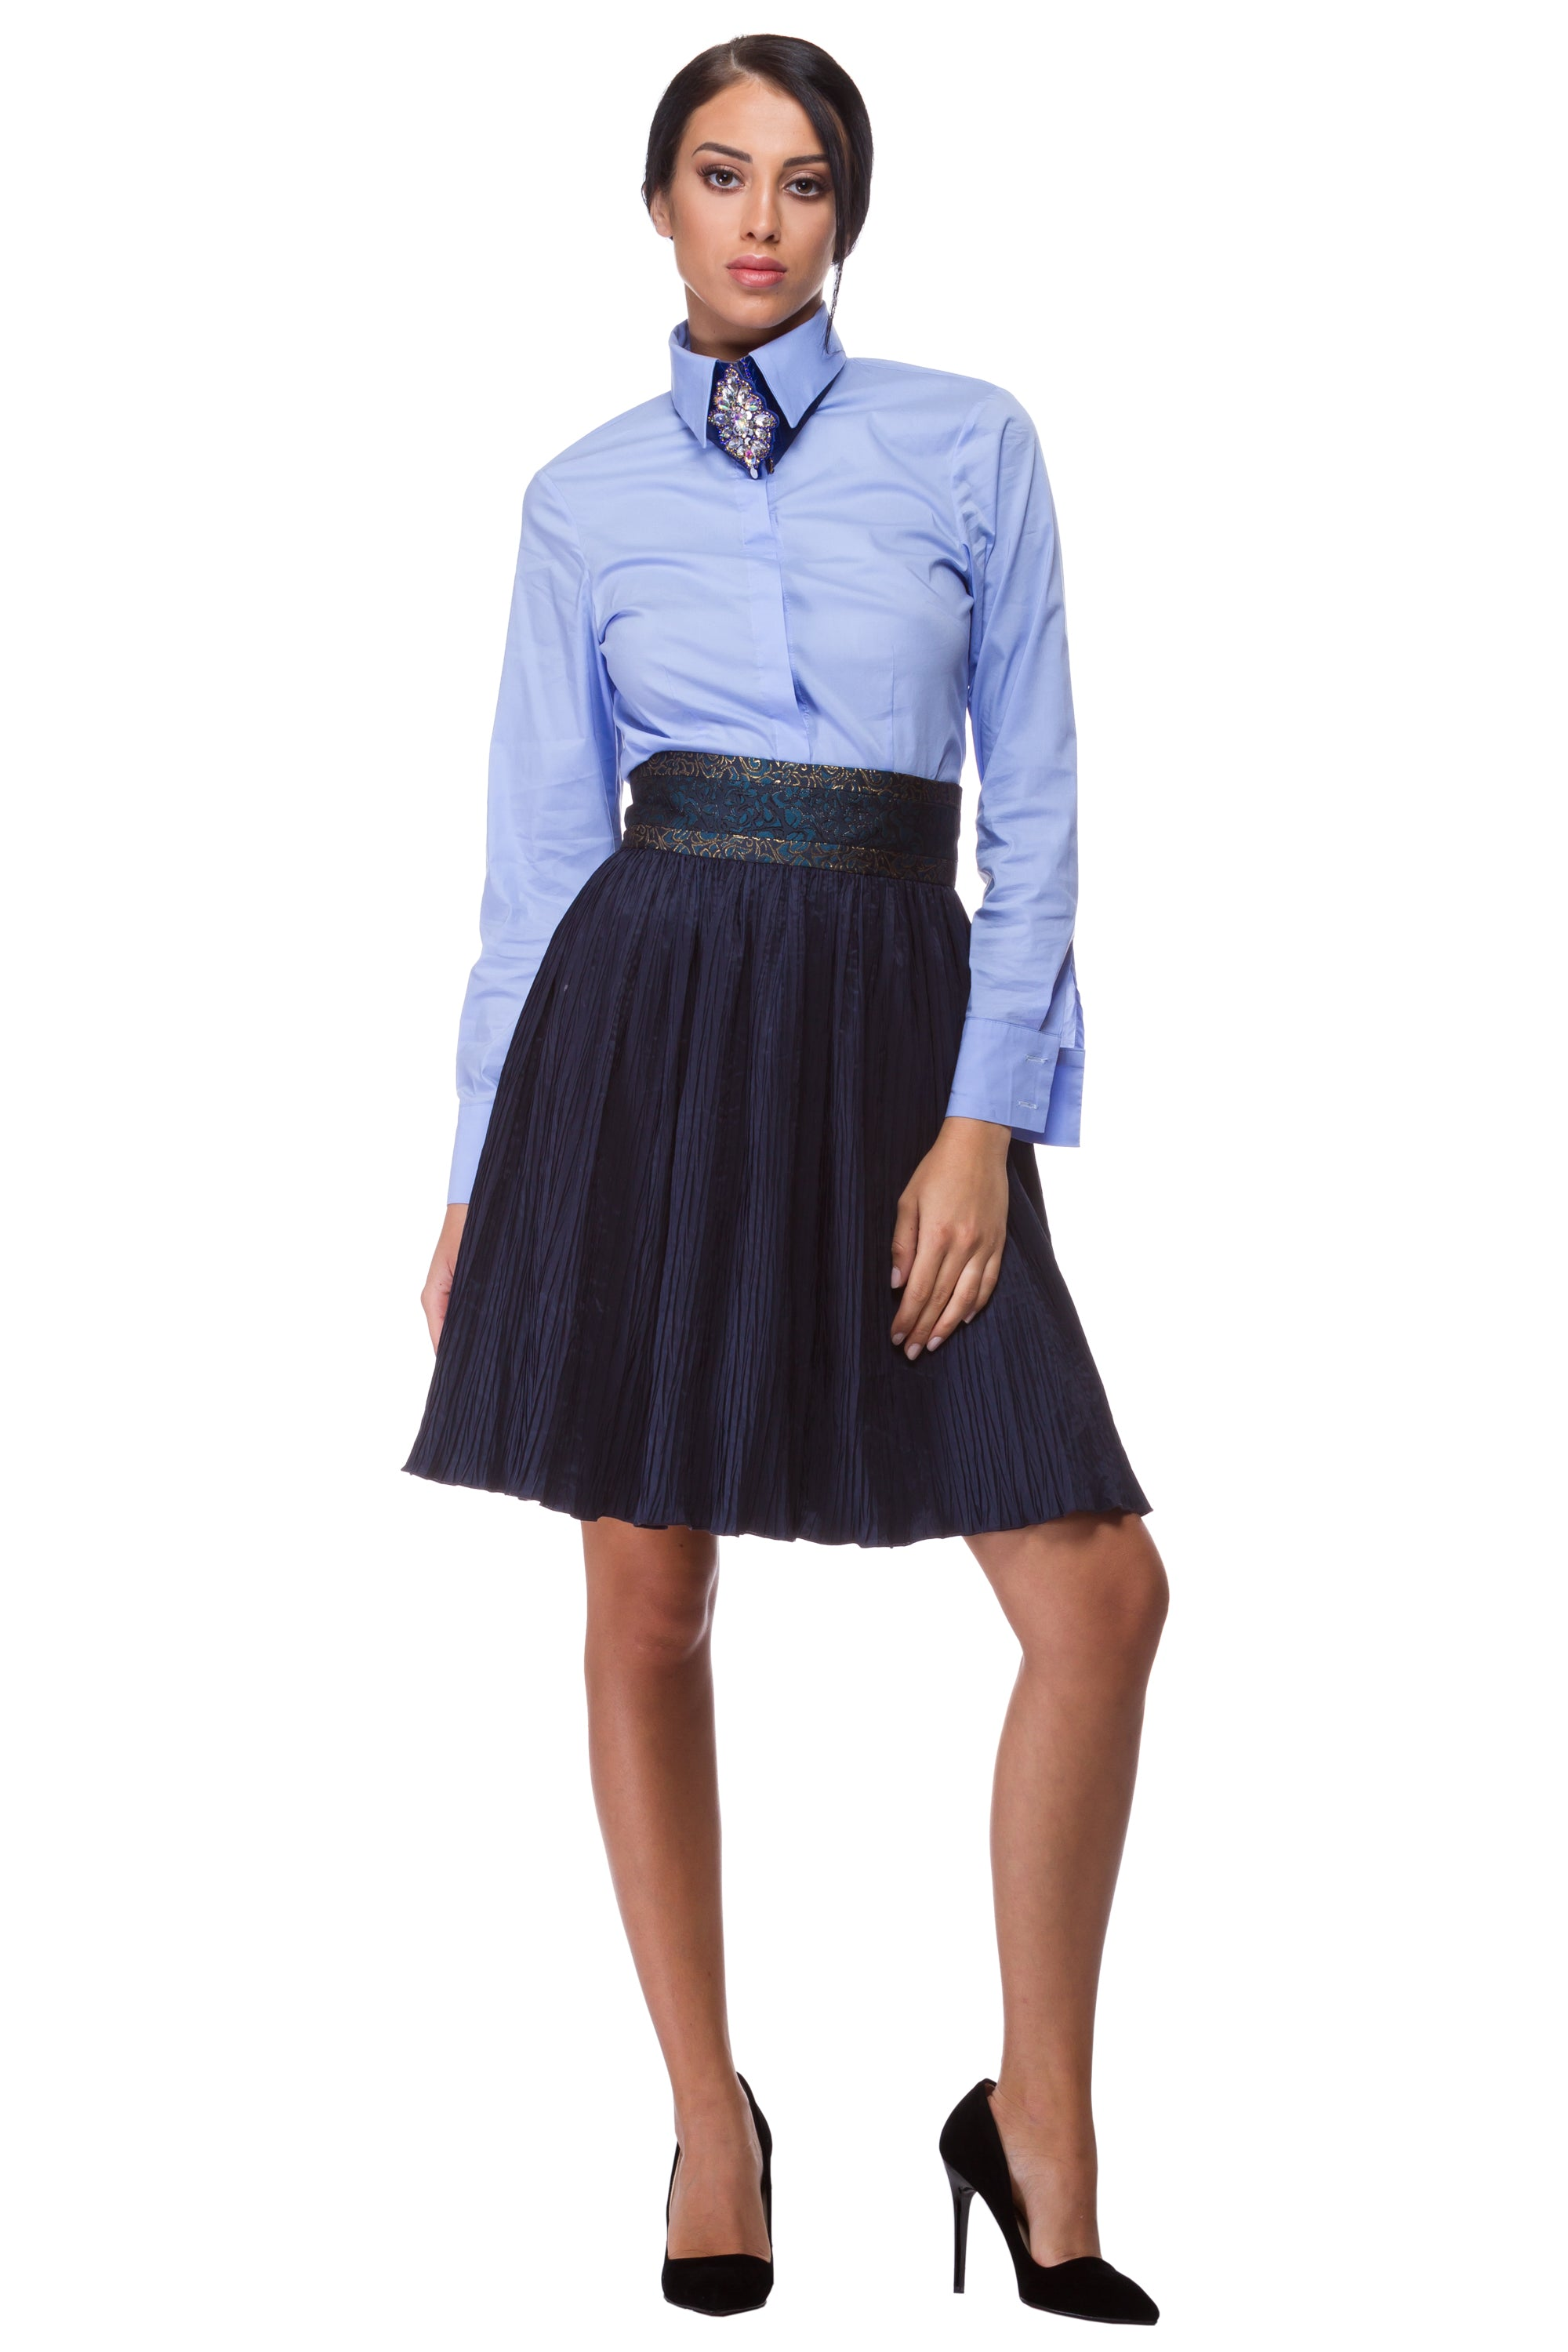 Pleated blue skirt with jacquard belt - WSK-0001